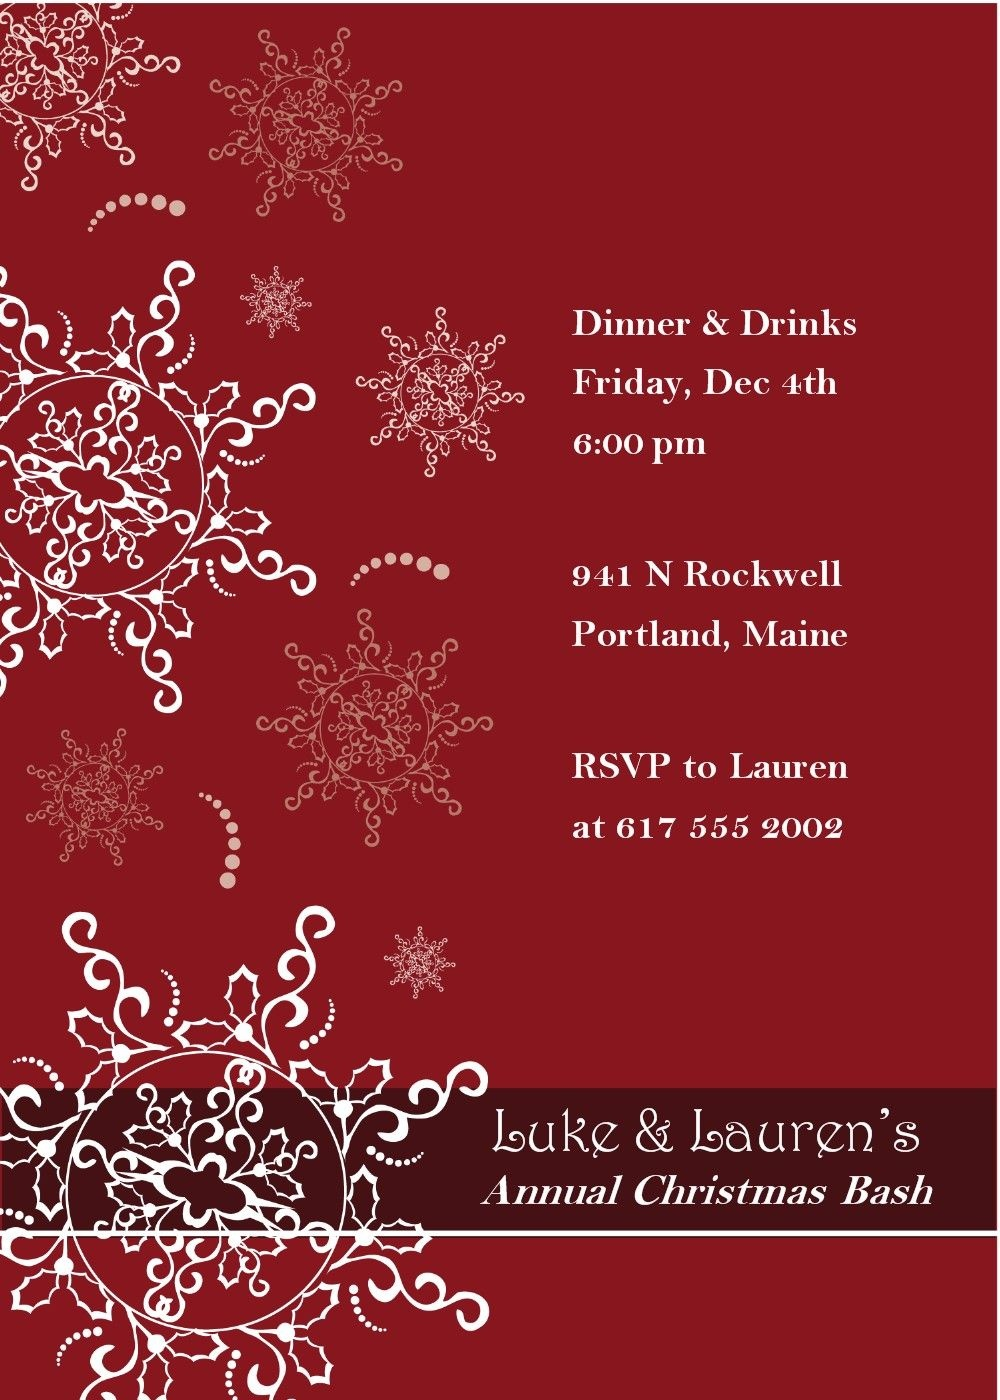 Free Christmas Party Invitation Templates Downloads | Party - Holiday Invitations Free Printable